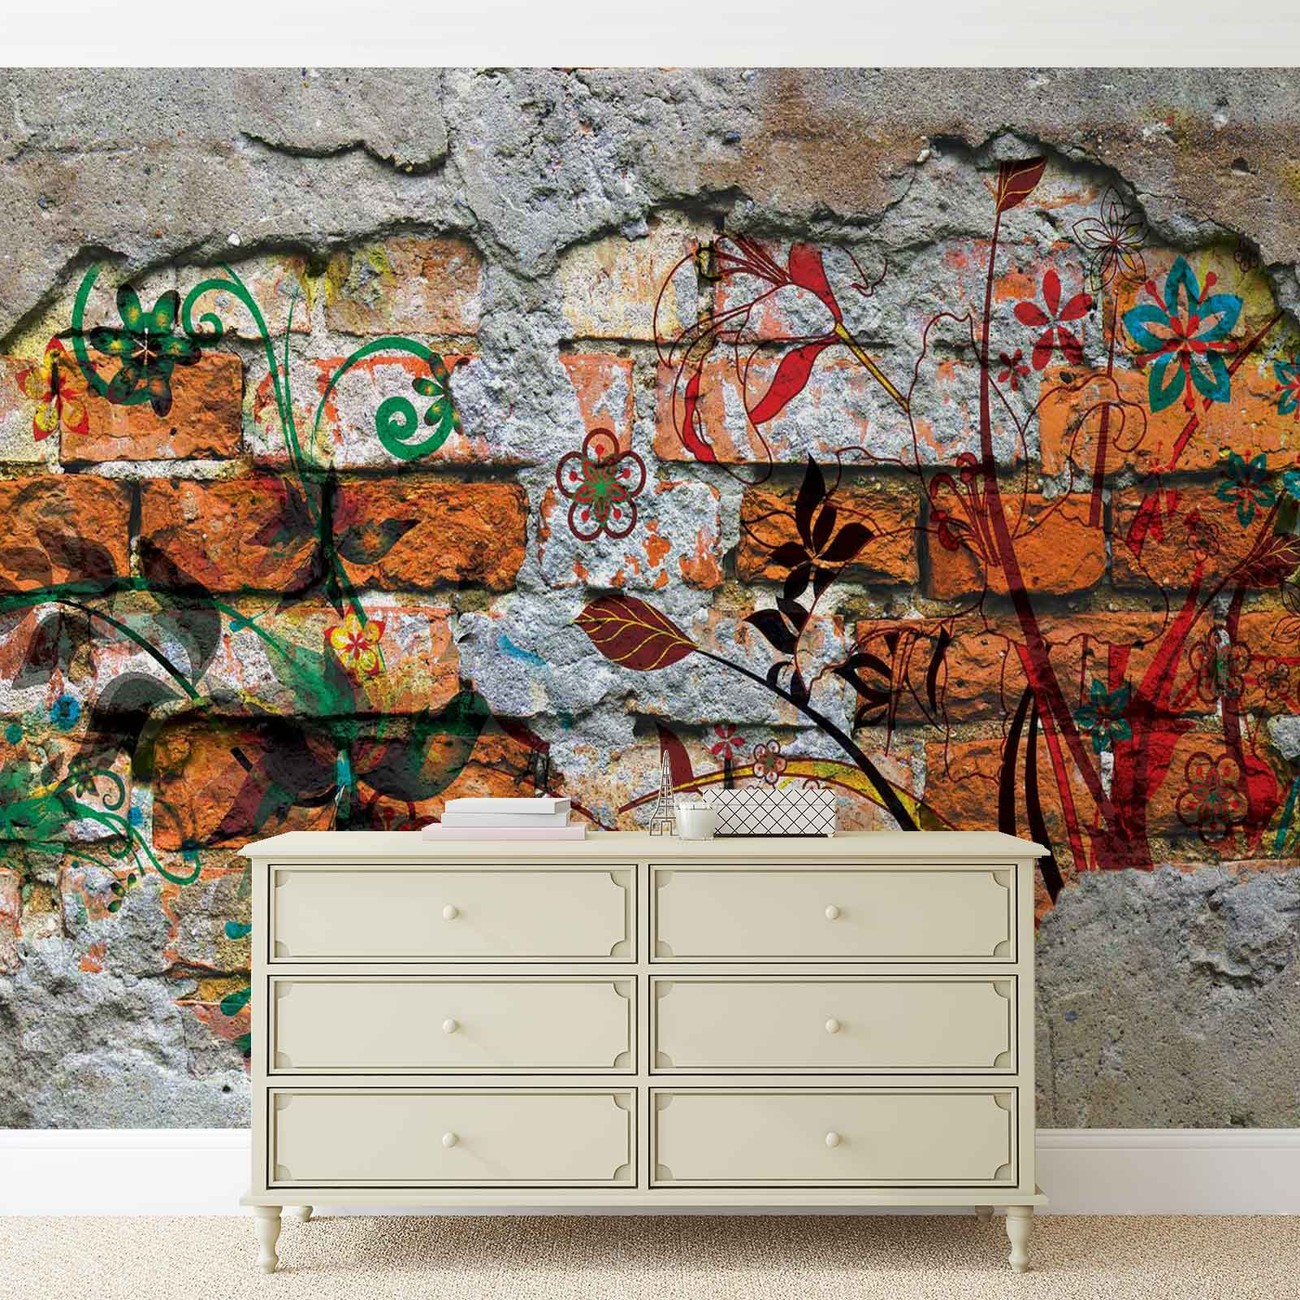 fototapete tapete wand graffiti street art bei europosters. Black Bedroom Furniture Sets. Home Design Ideas